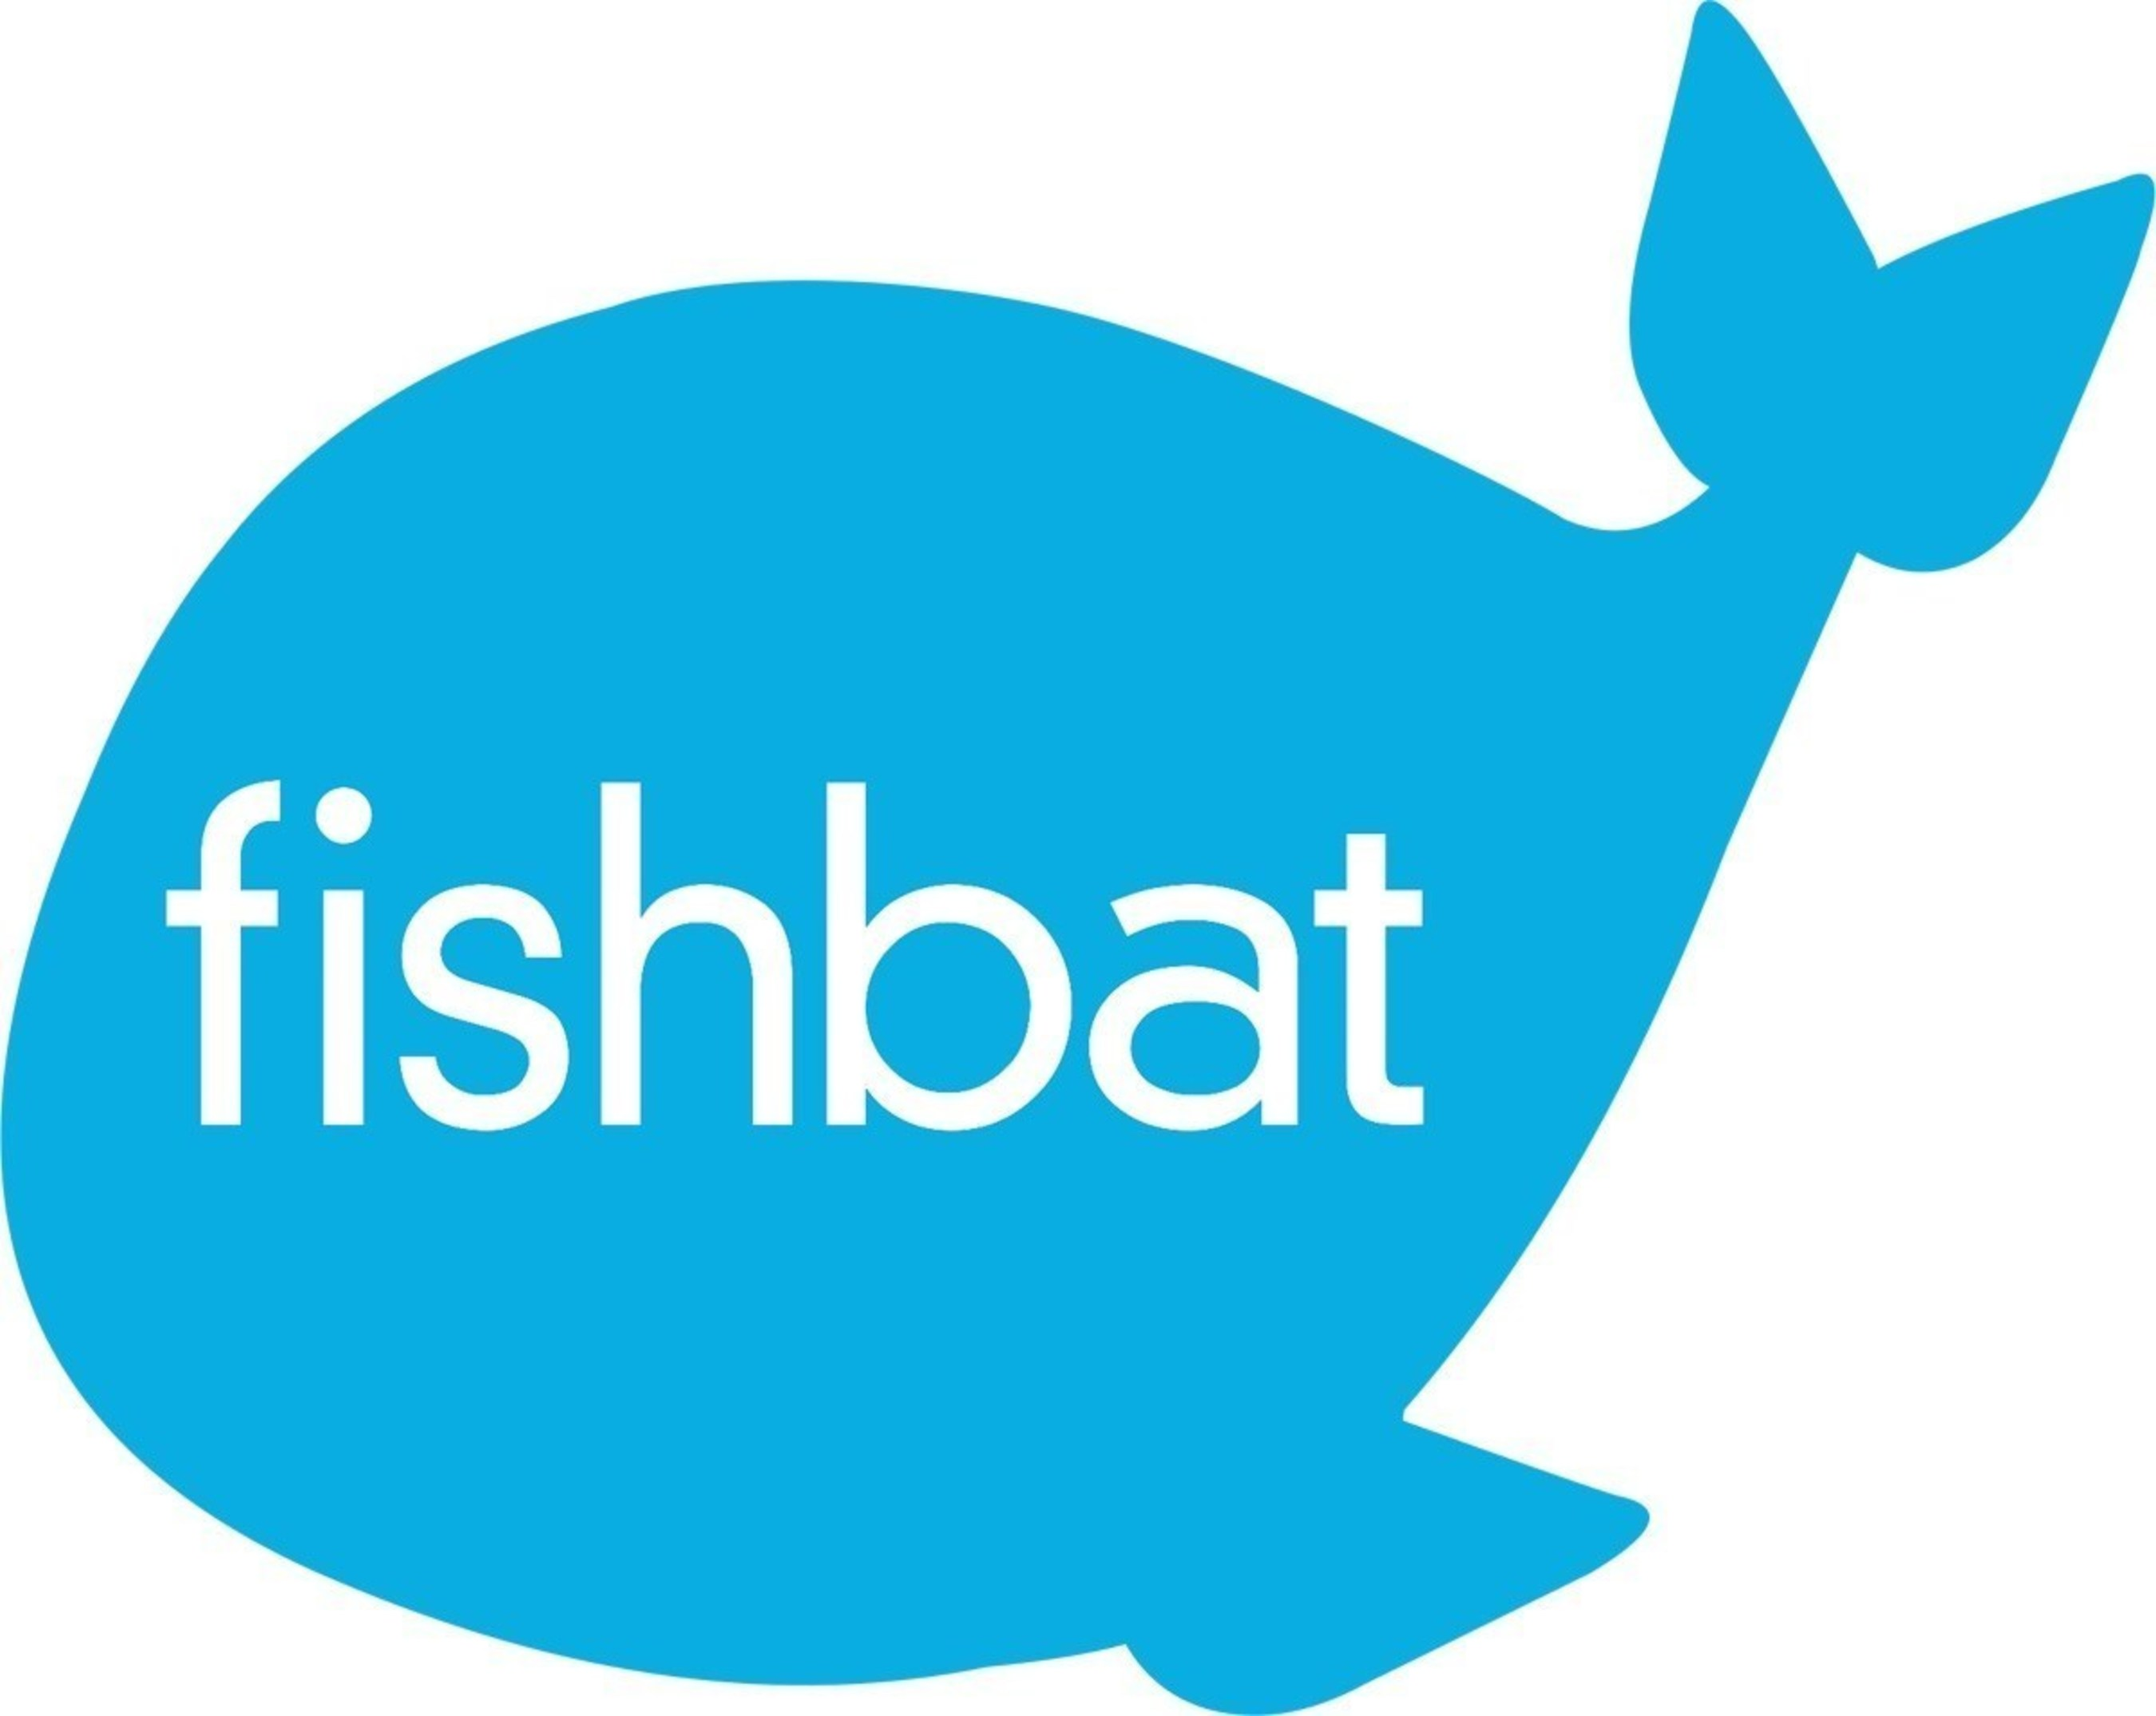 fishbat CEO Clay Darrohn Identifies 4 Steps to Make Your Social Media Marketing More Effective